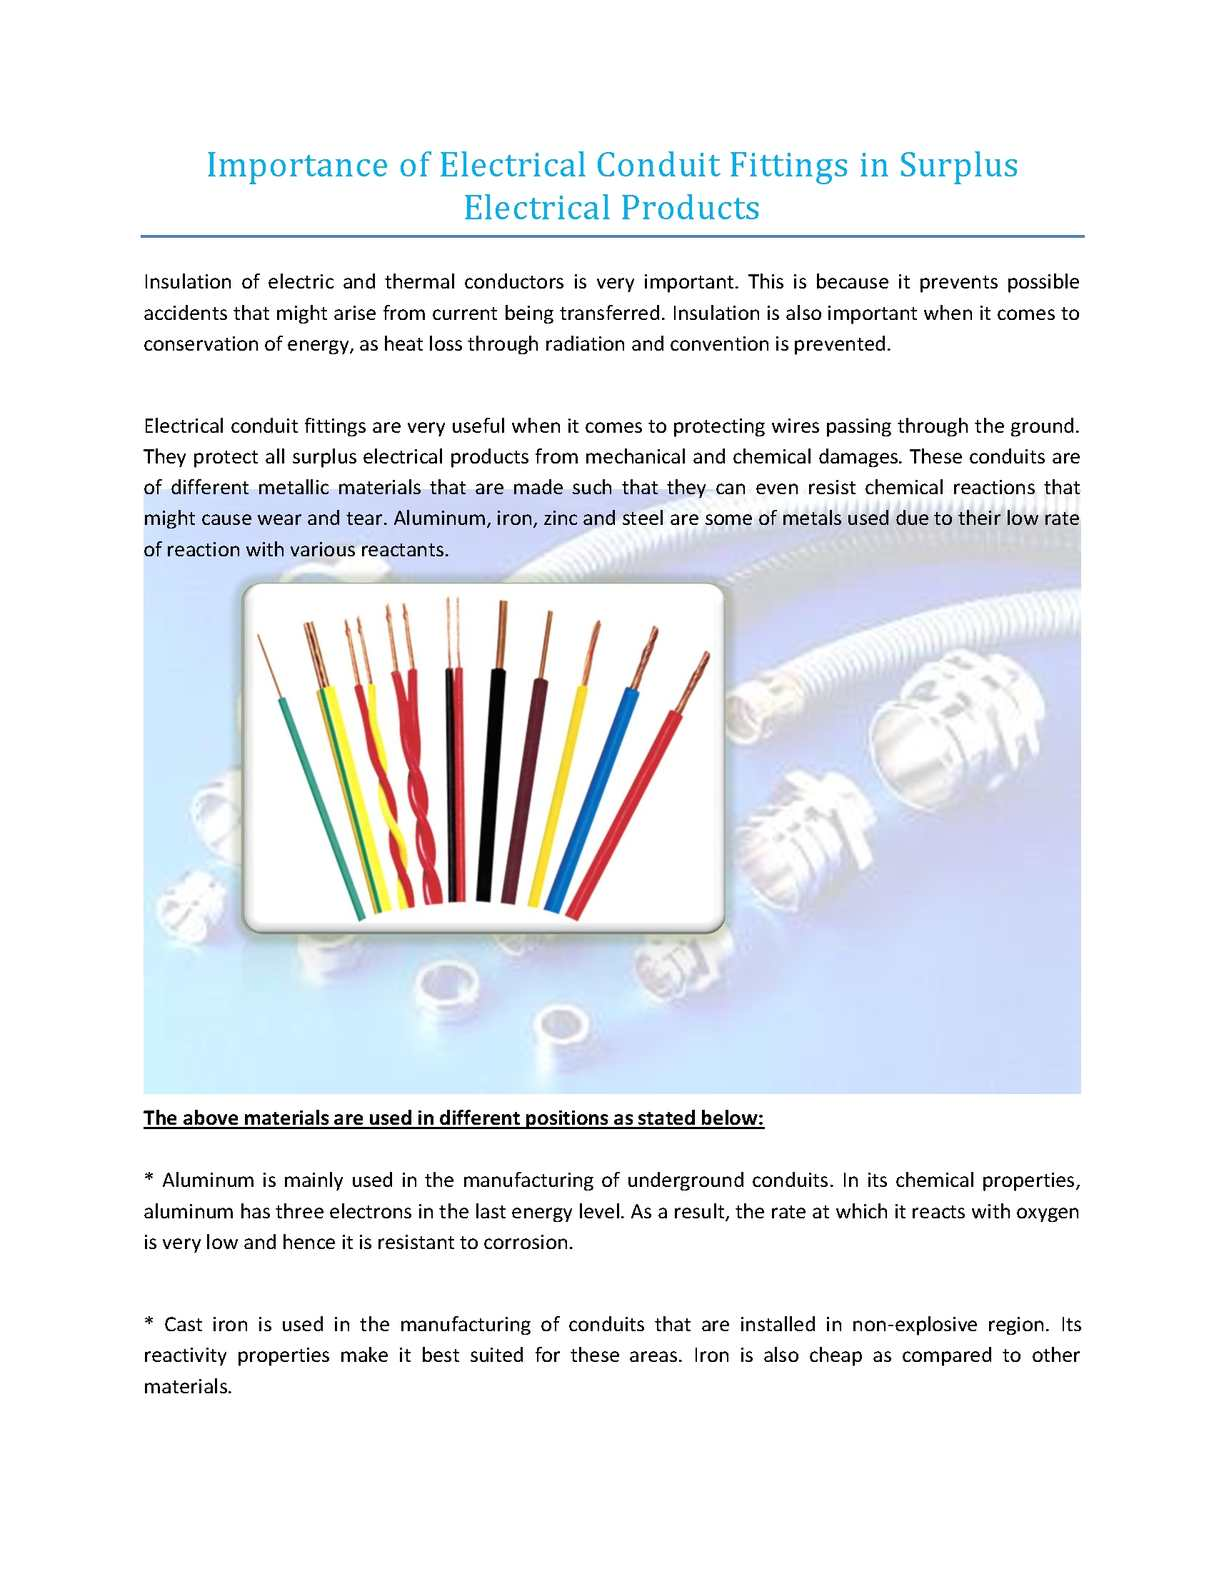 Calamo Importance Of Electrical Conduit Fittings In Surplus Pictures Products